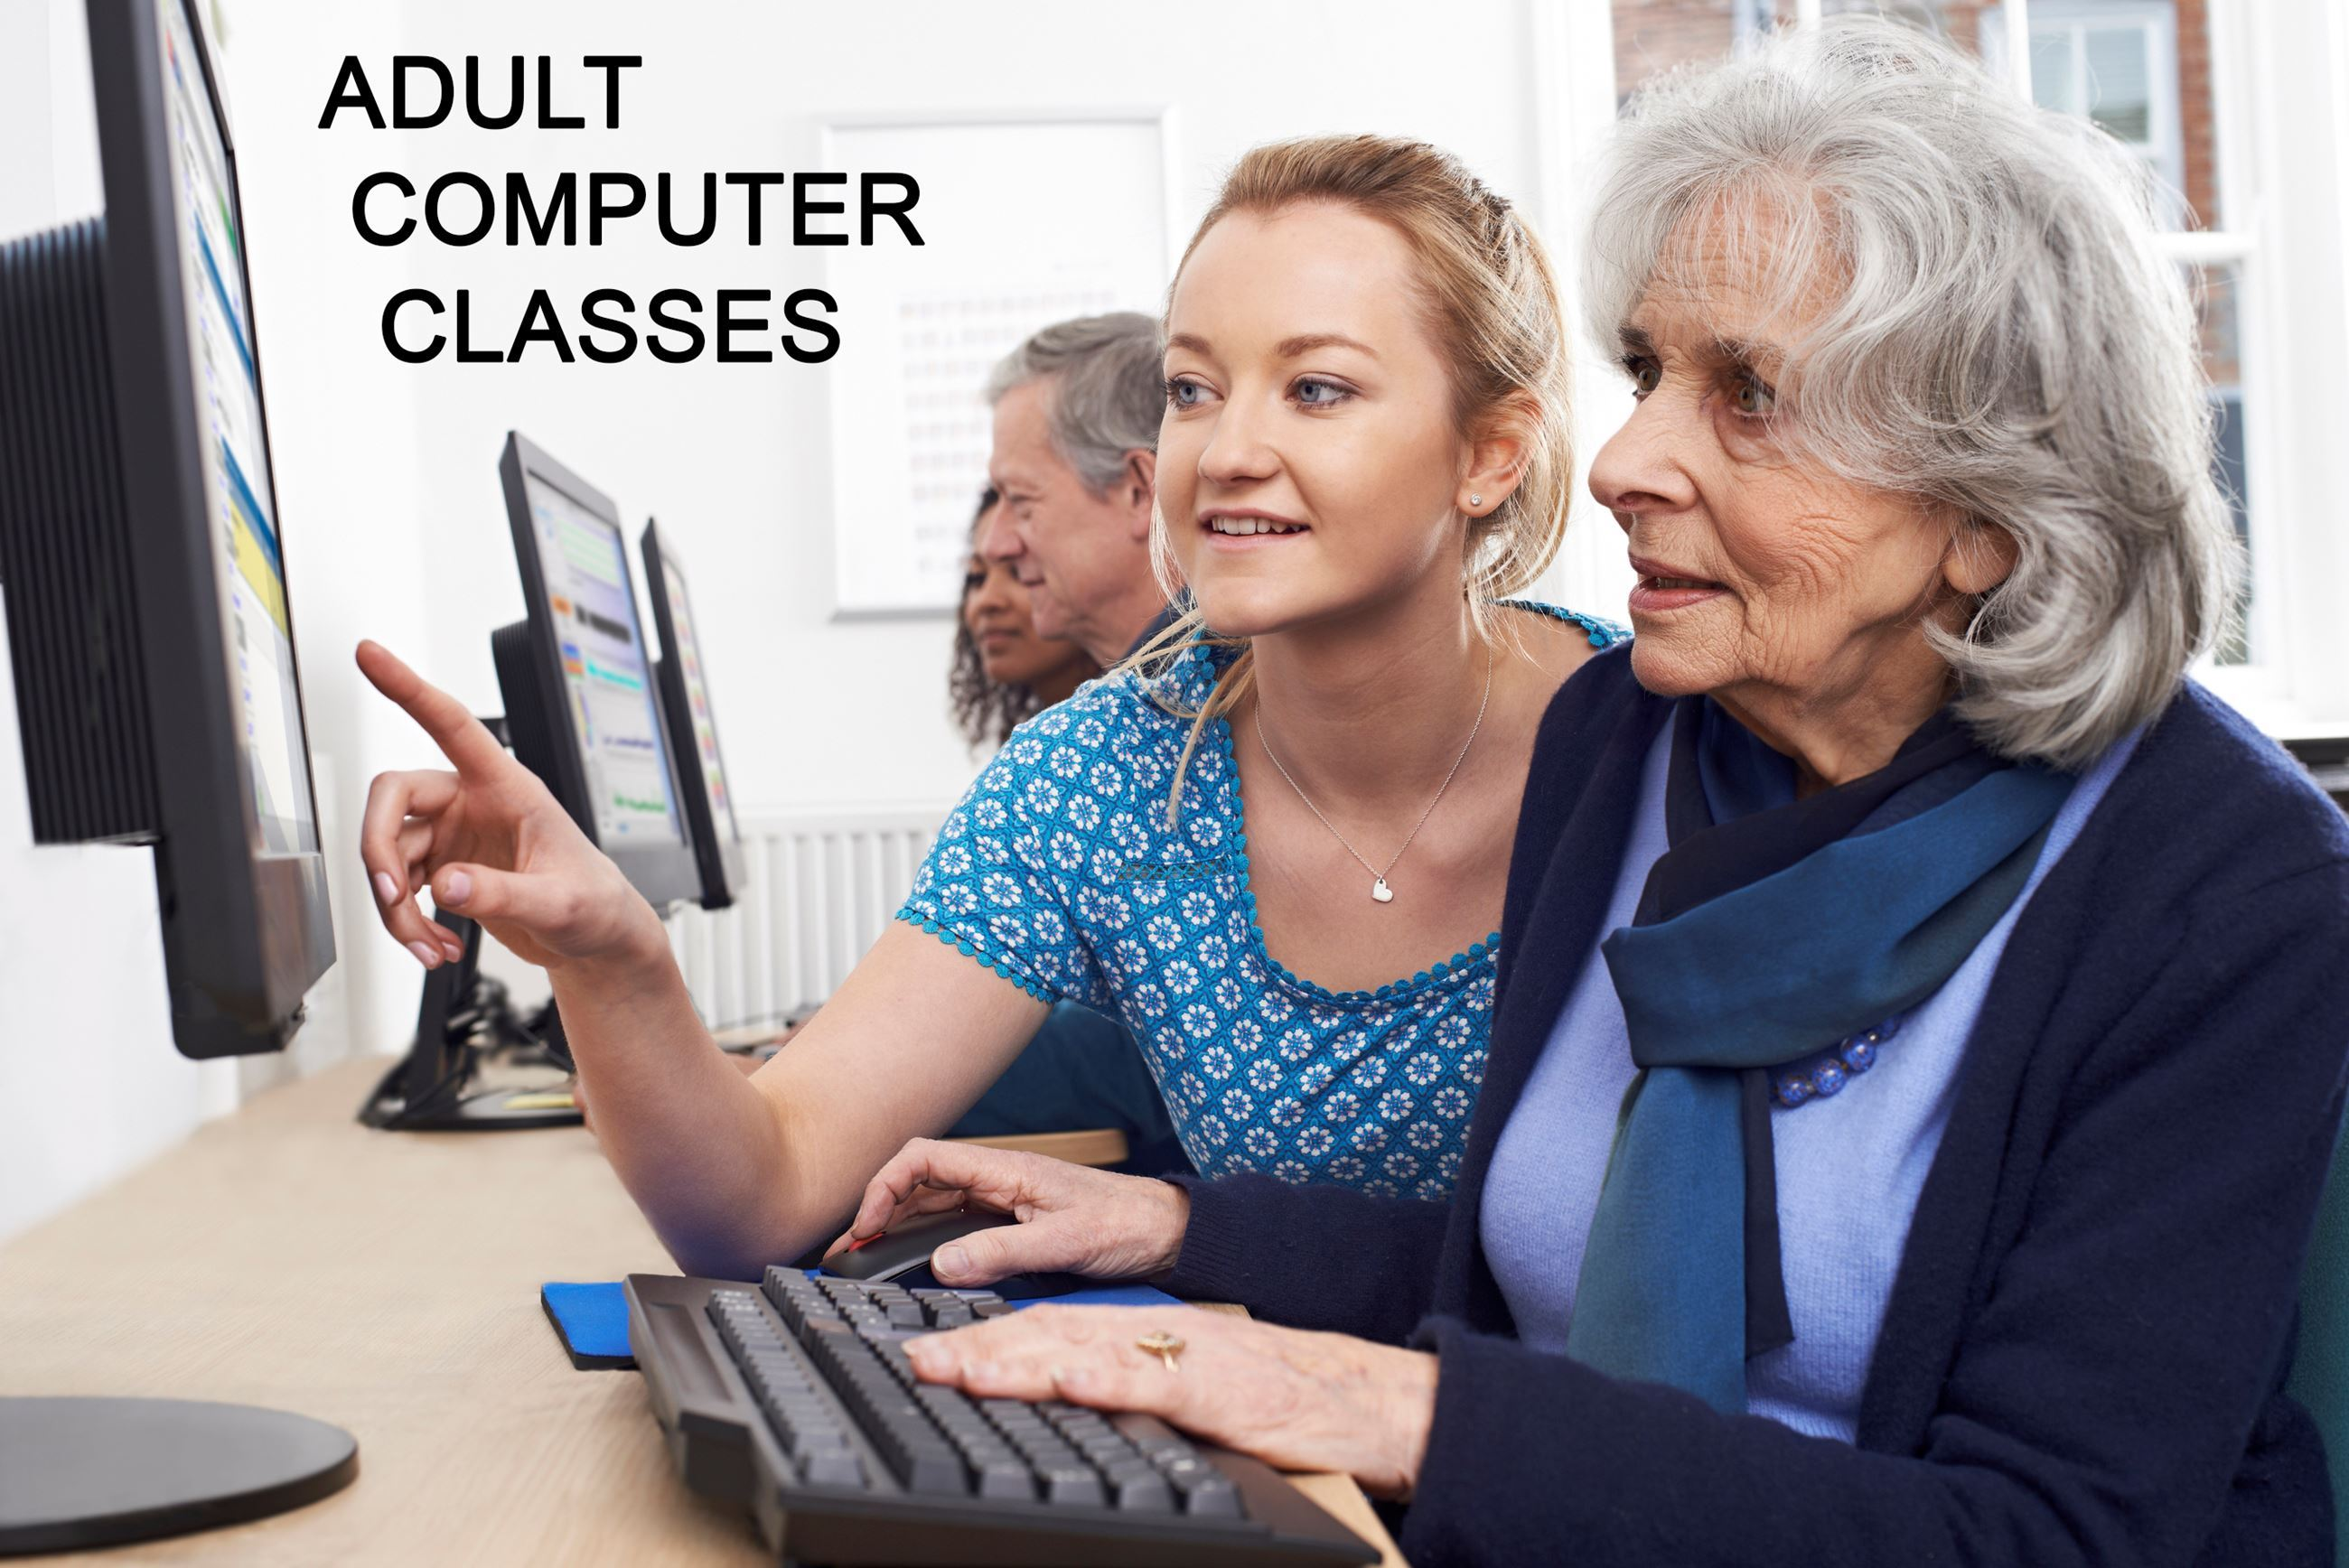 Adult Computer Classes @ CW Thomas Park Dania Beach